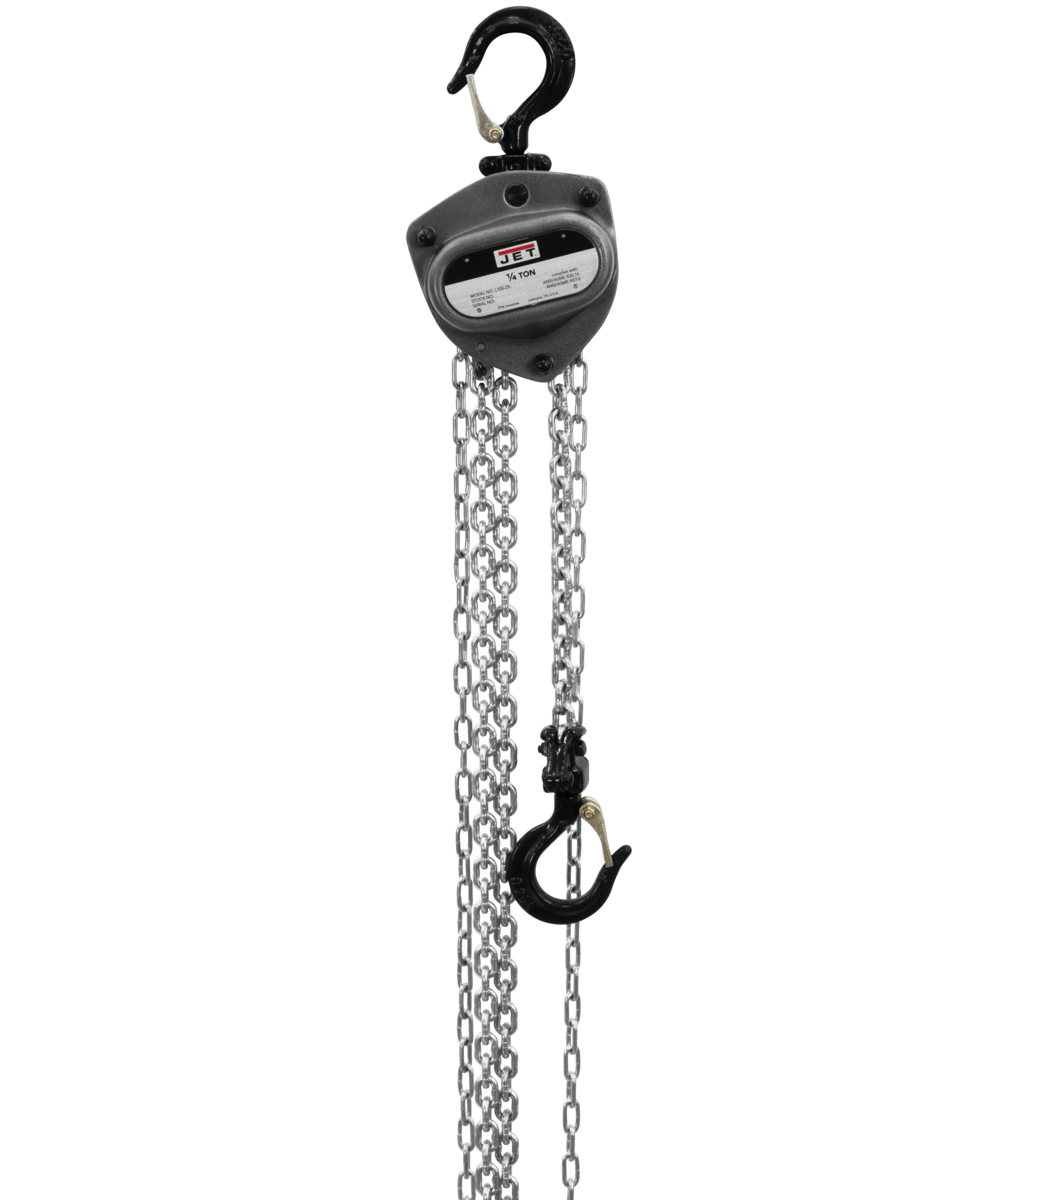 L-100-250WO-15, 1/4-Ton Hand Chain Hoist With 15' Lift & Overload Protection